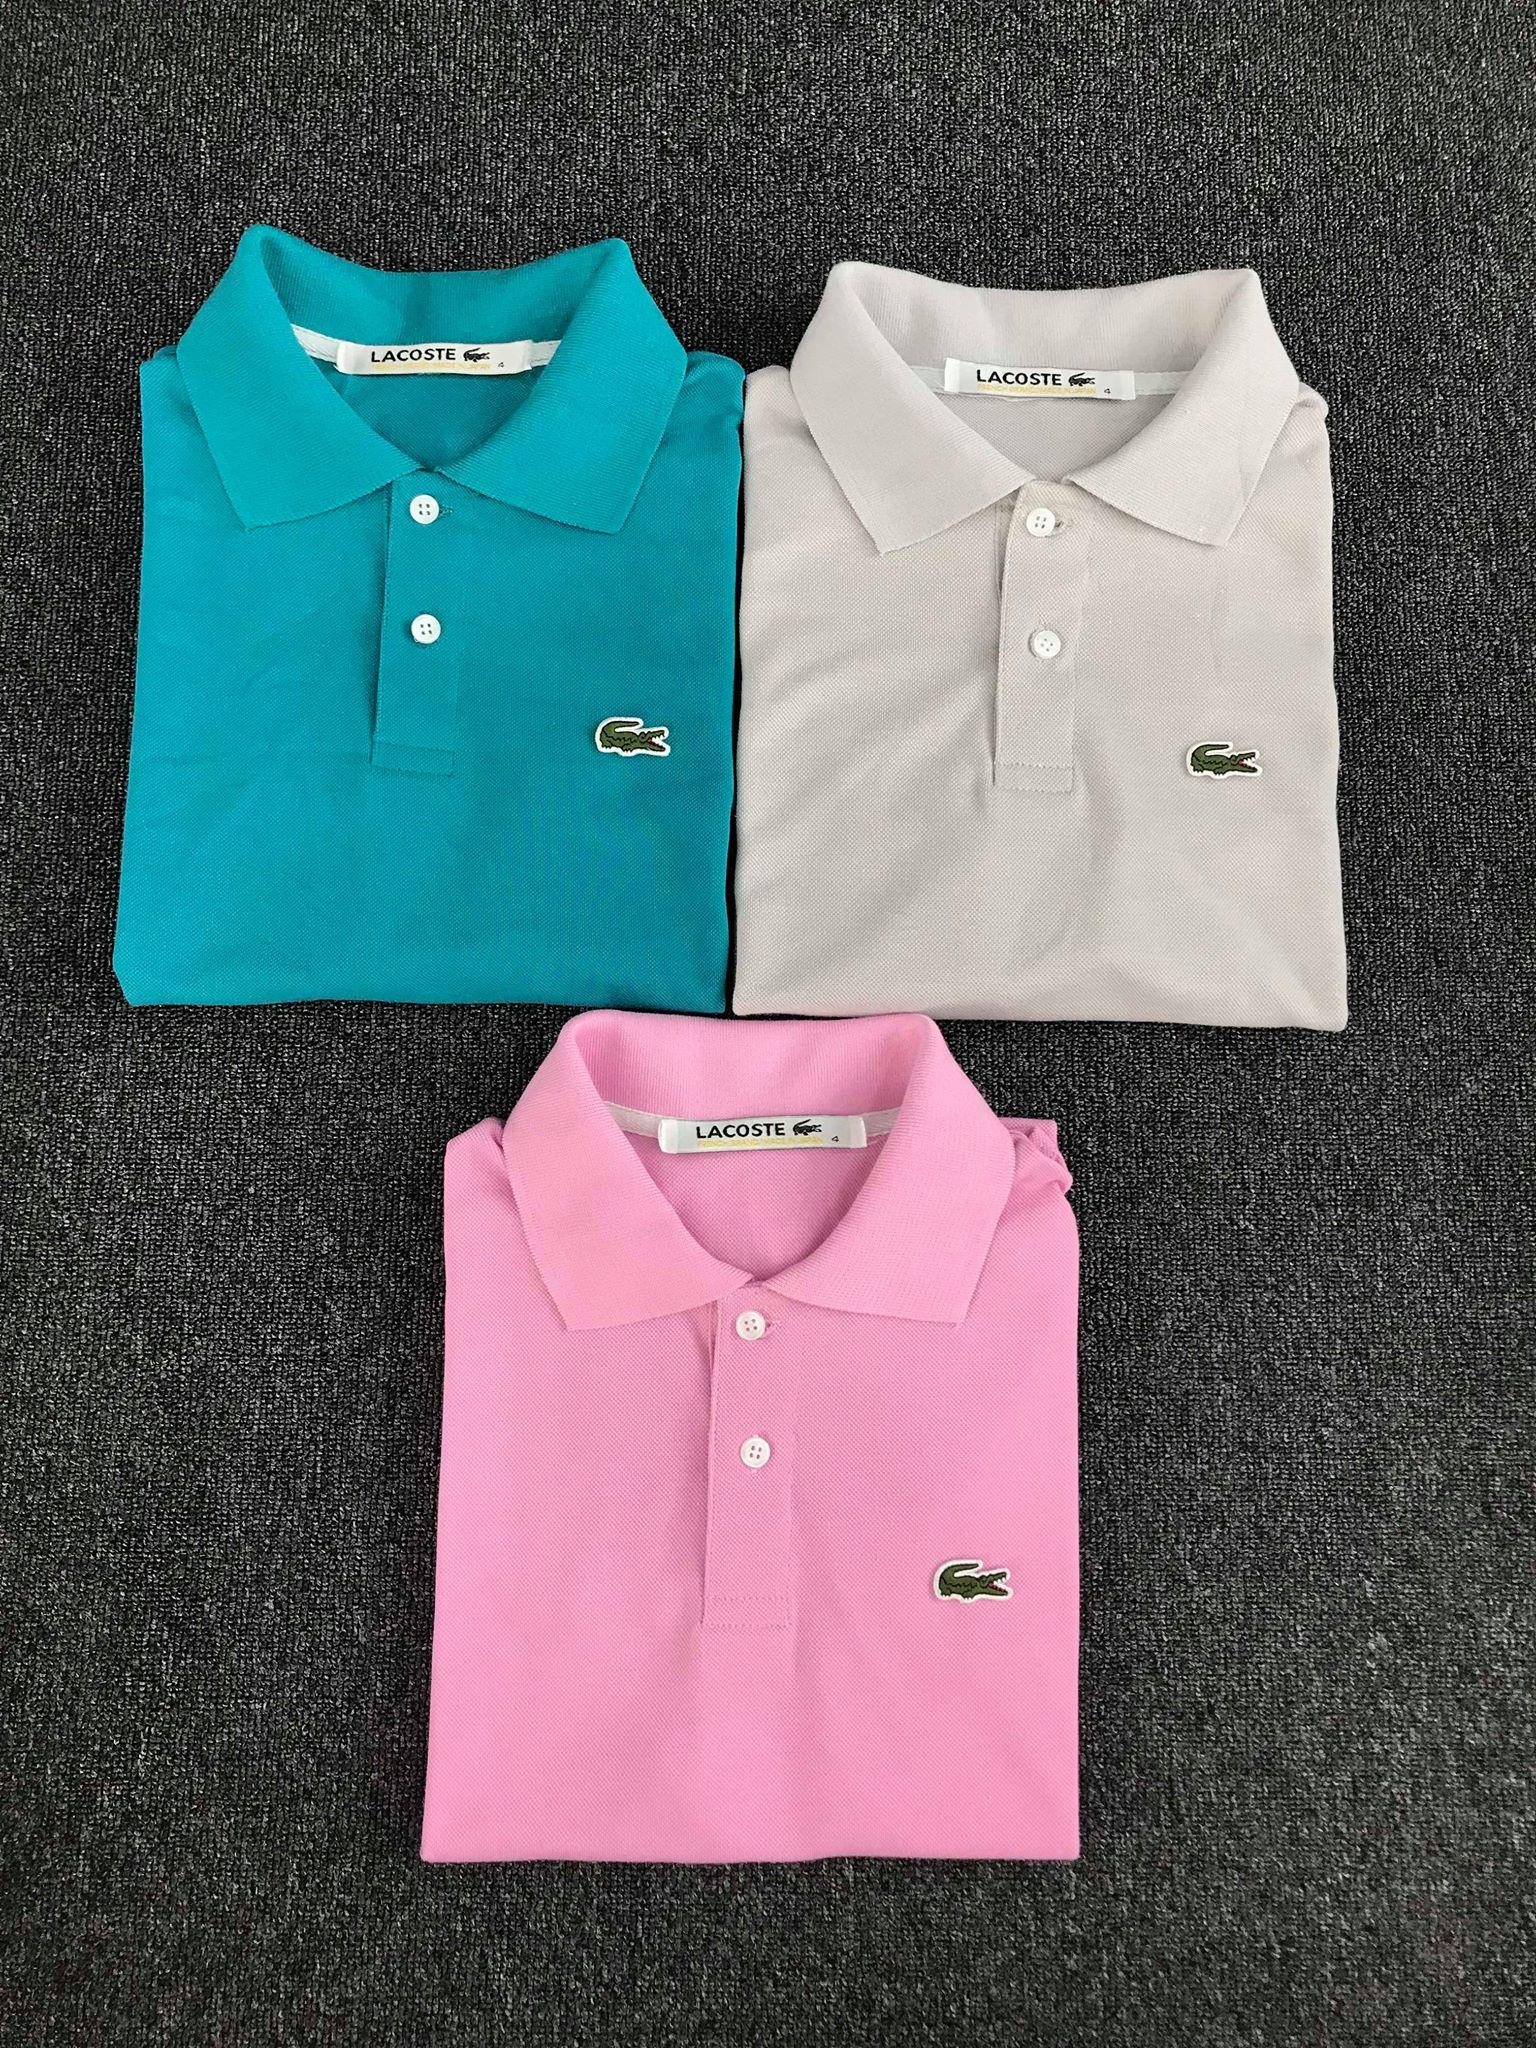 09b0371a6 Lacoste Philippines - Lacoste Polo for Men for sale - prices ...